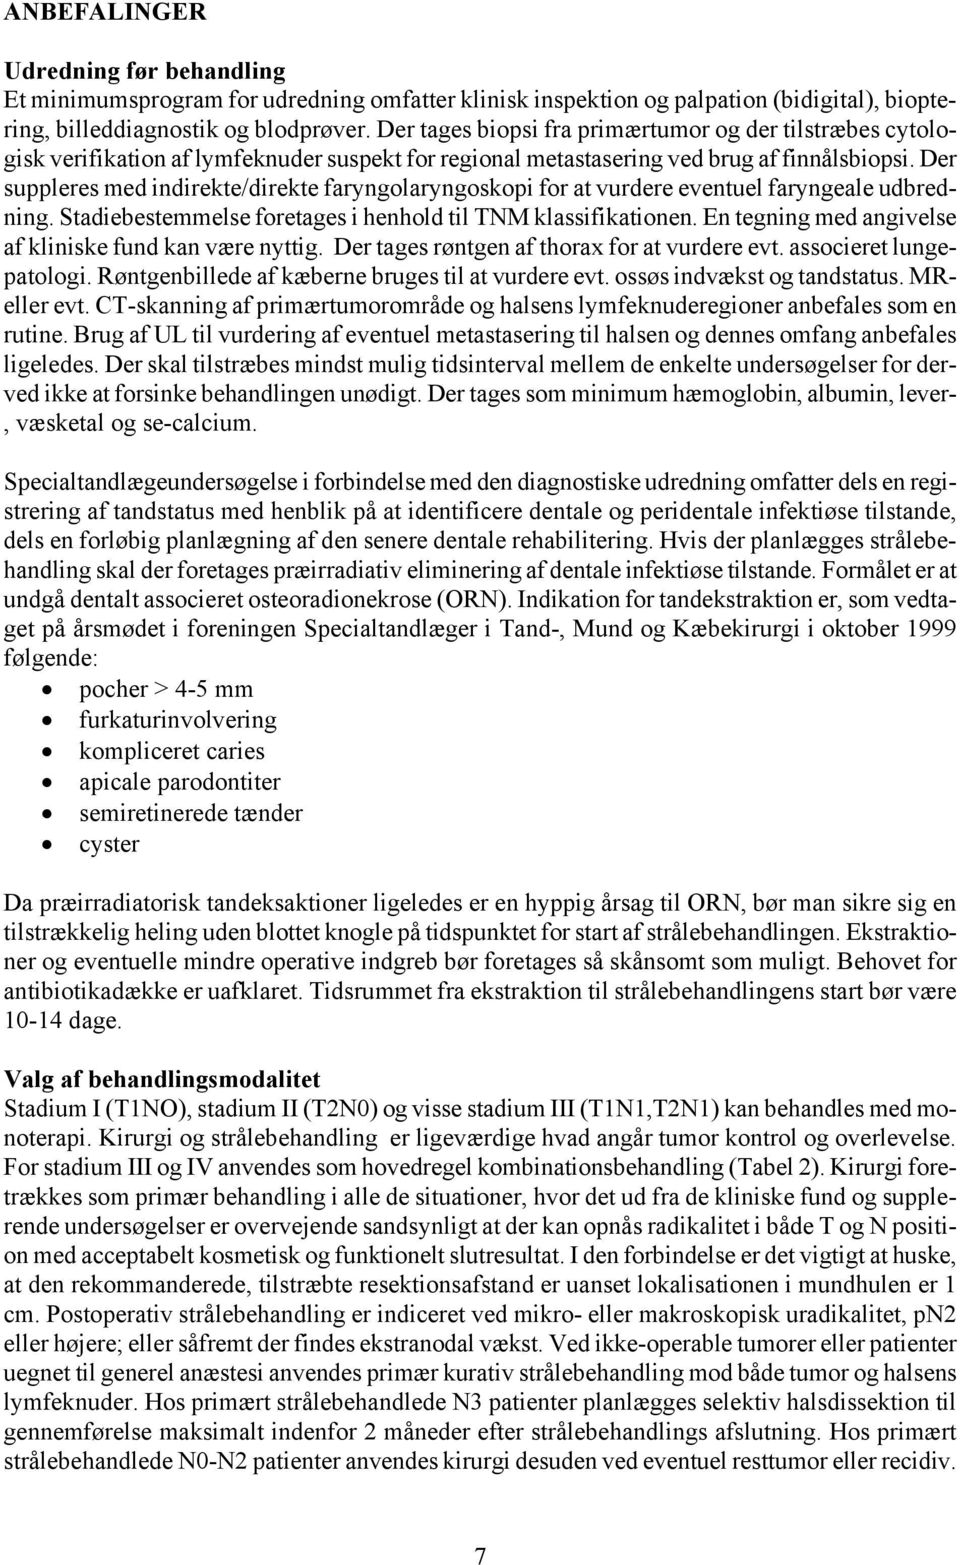 Der suppleres med indirekte/direkte faryngolaryngoskopi for at vurdere eventuel faryngeale udbredning. Stadiebestemmelse foretages i henhold til TNM klassifikationen.